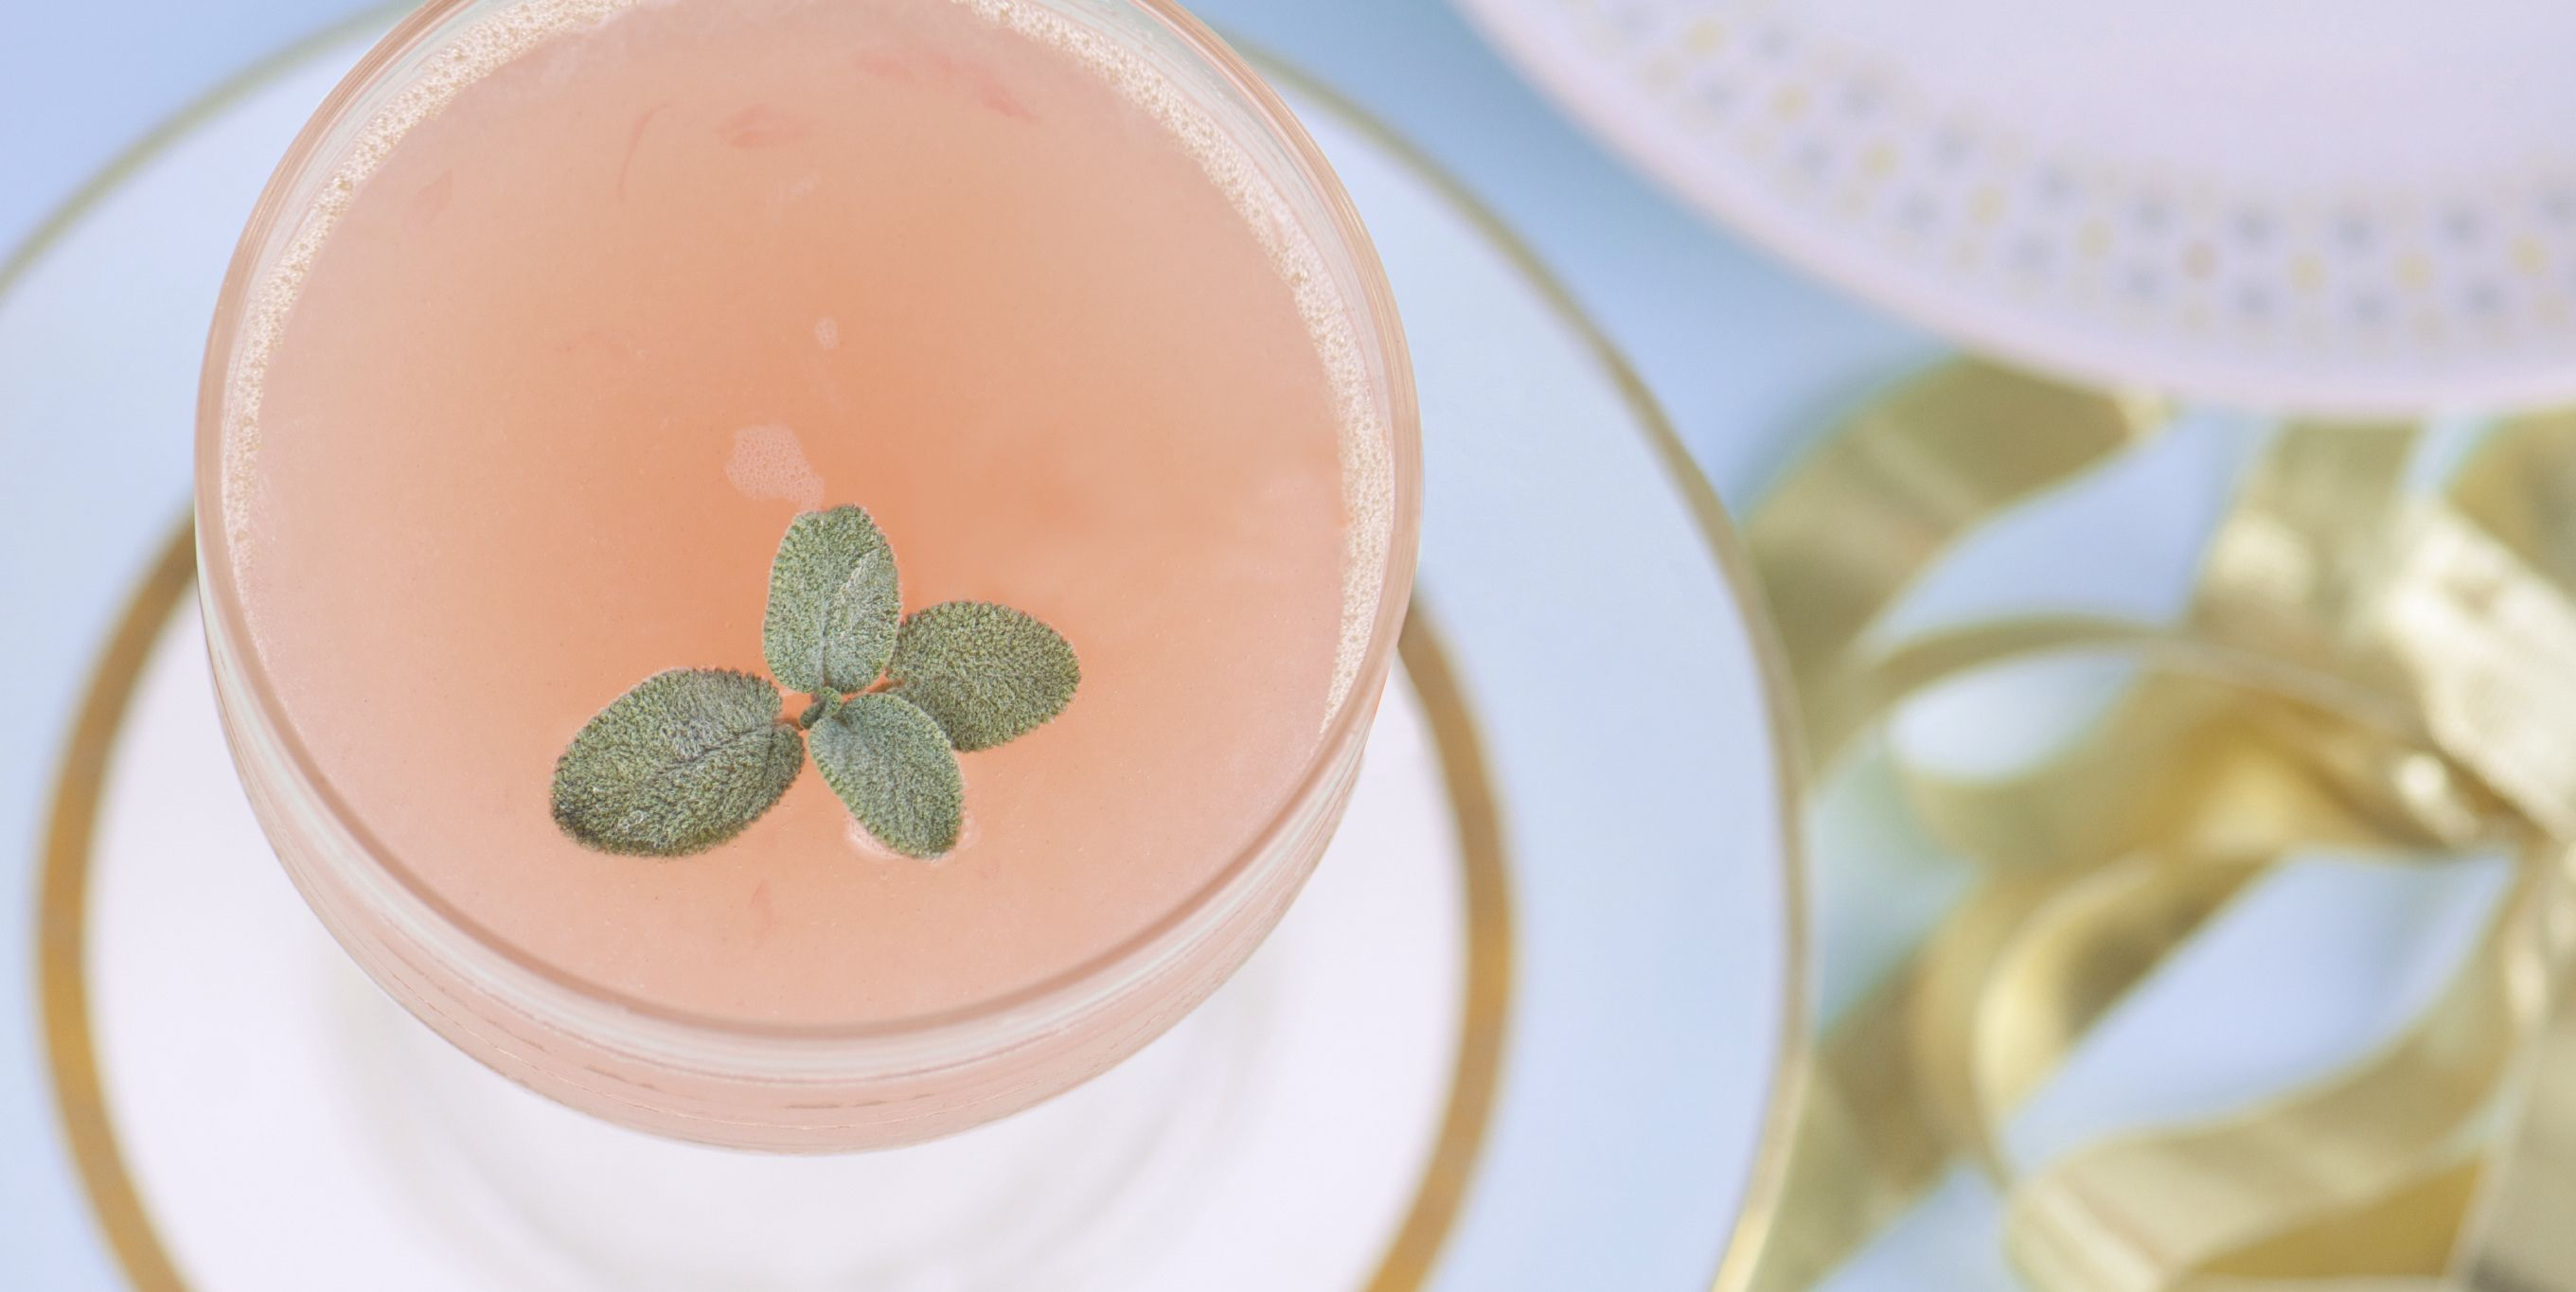 30 Champagne Cocktails To Add Lighthearted Flavor To Your Evening